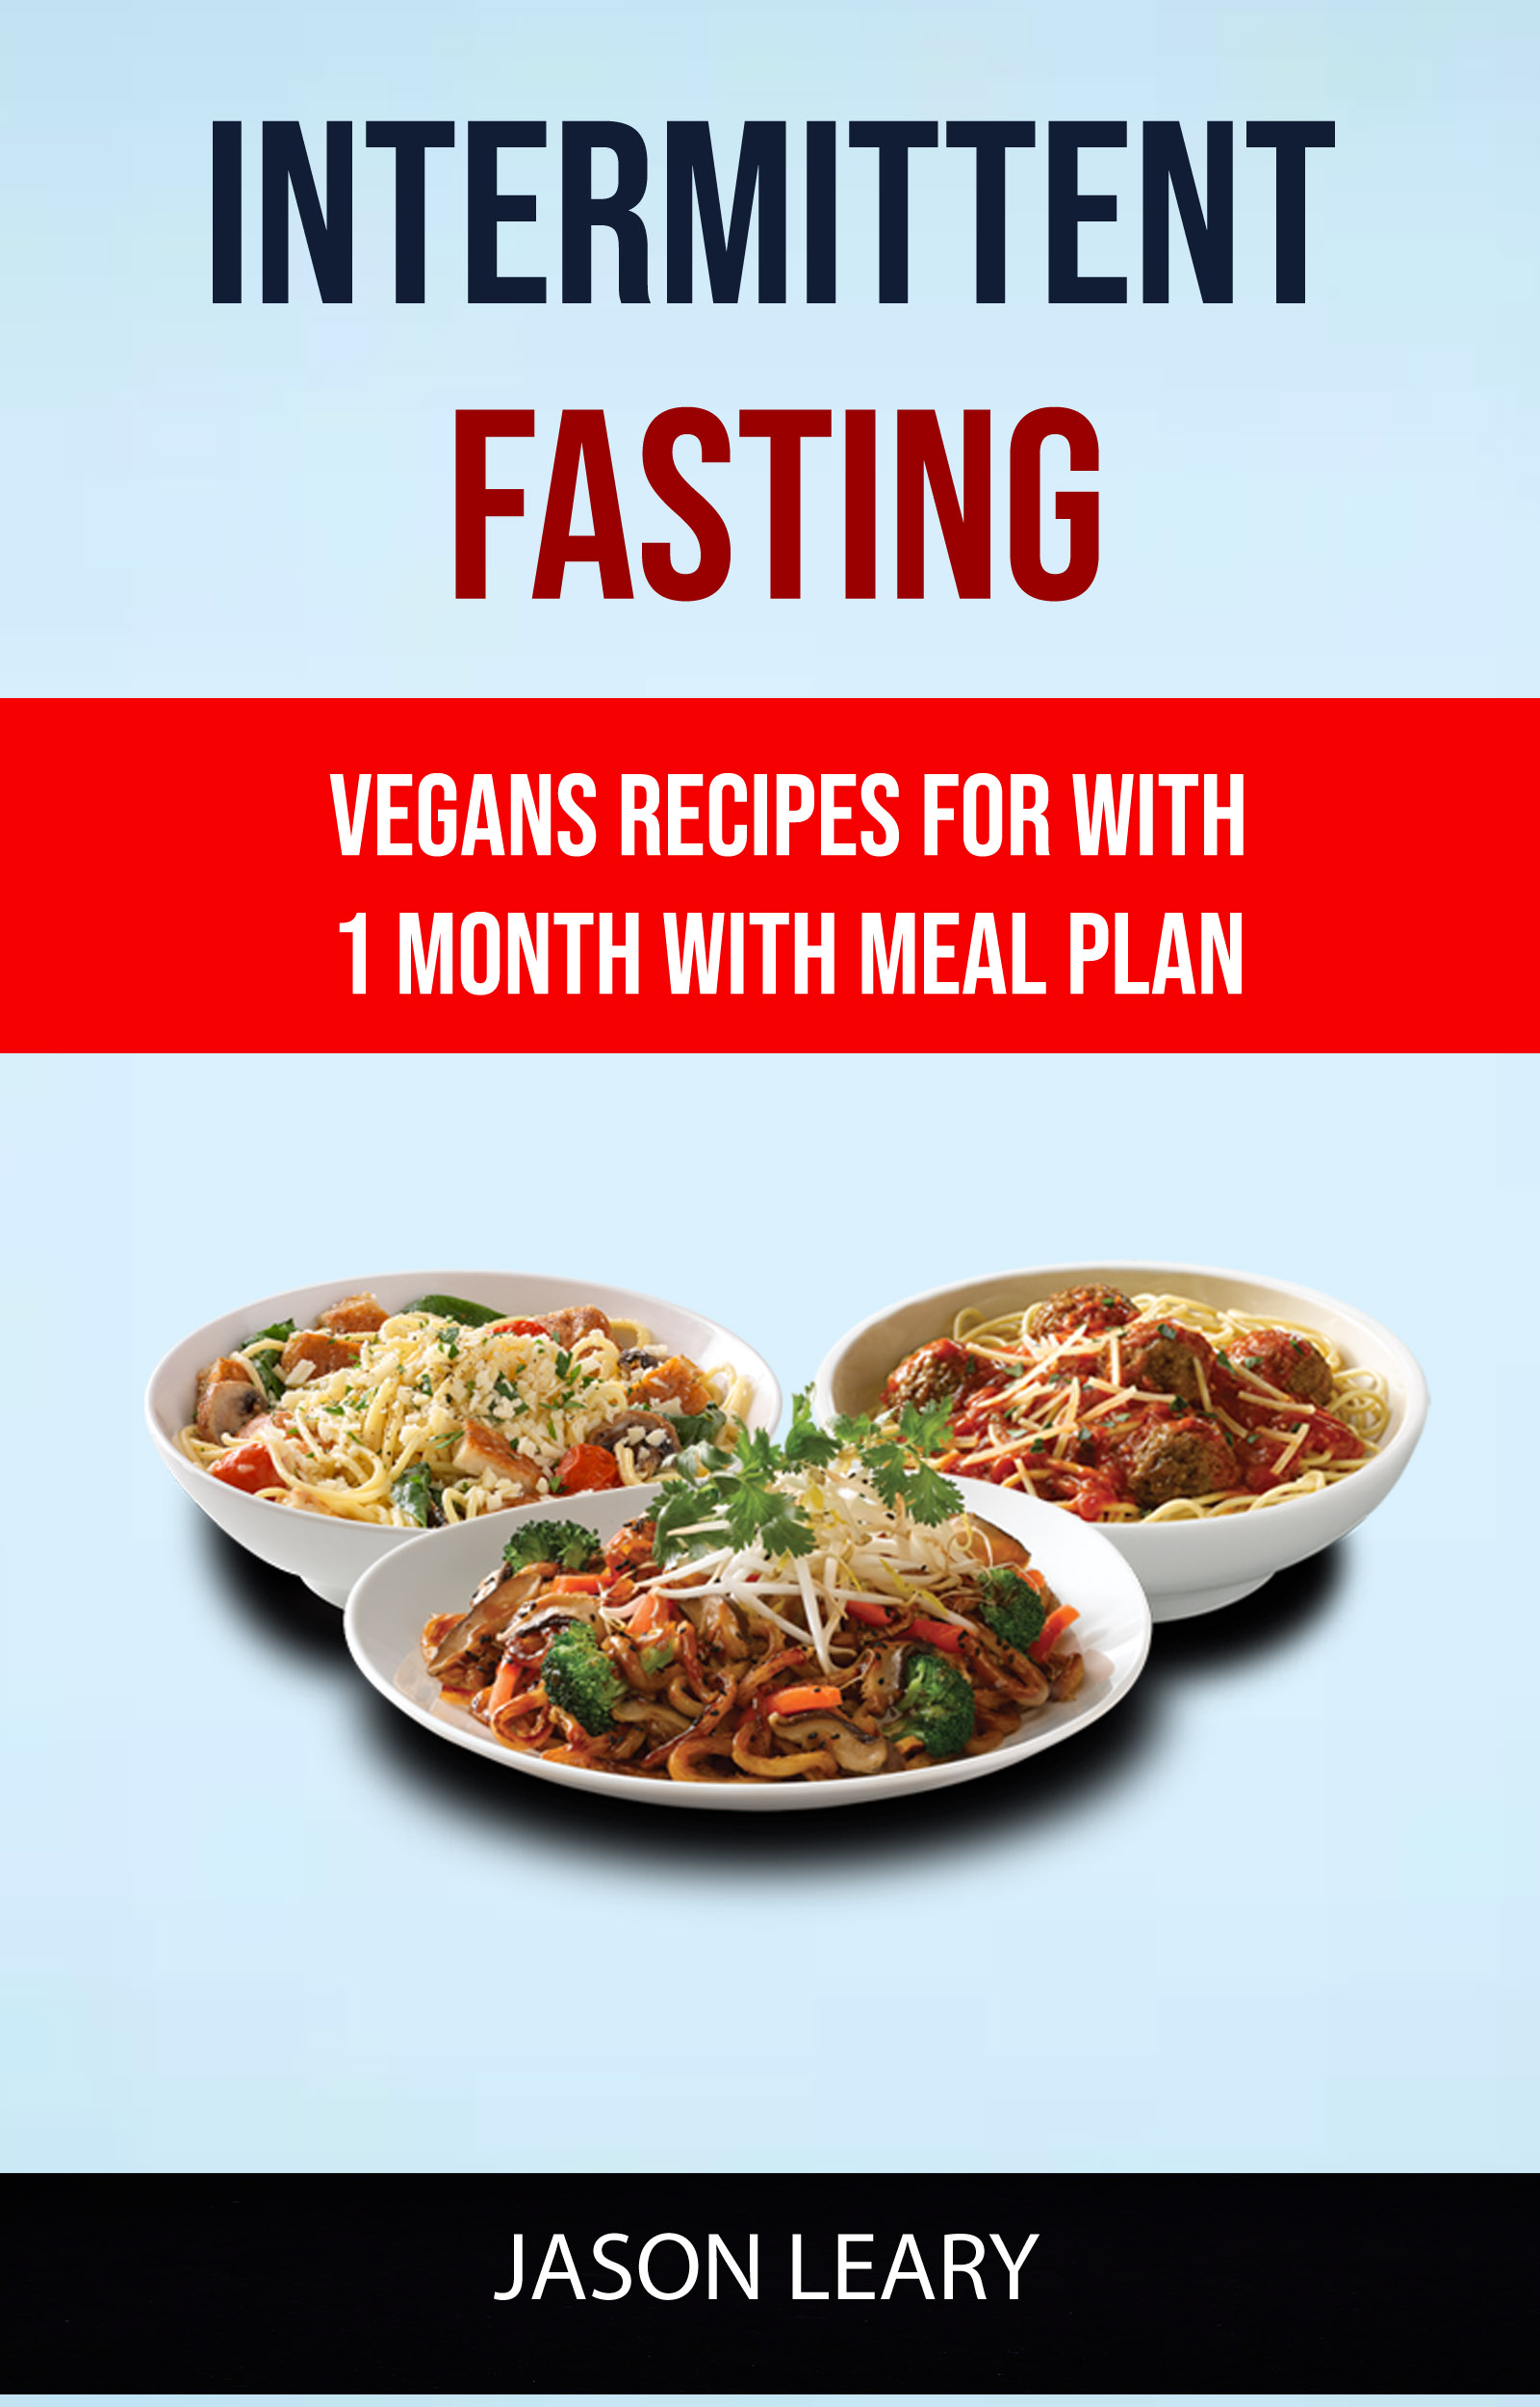 Intermittent fasting: vegans recipes for with 1 month with meal plan